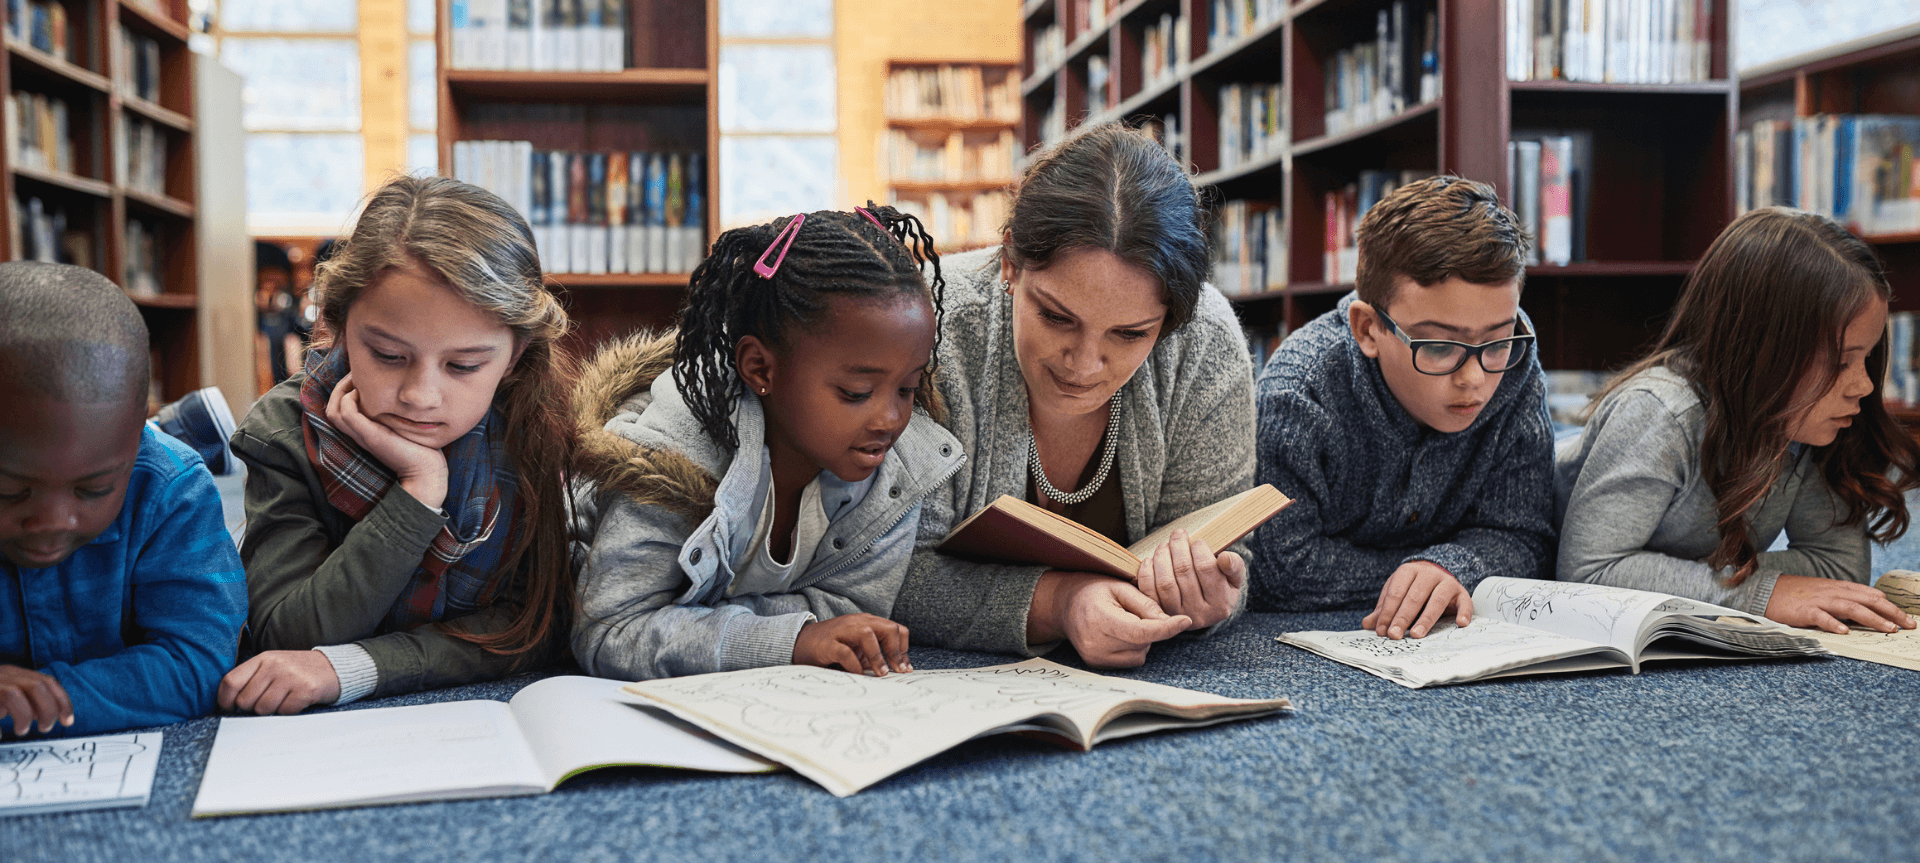 Female Teacher In Library With Elementary Students